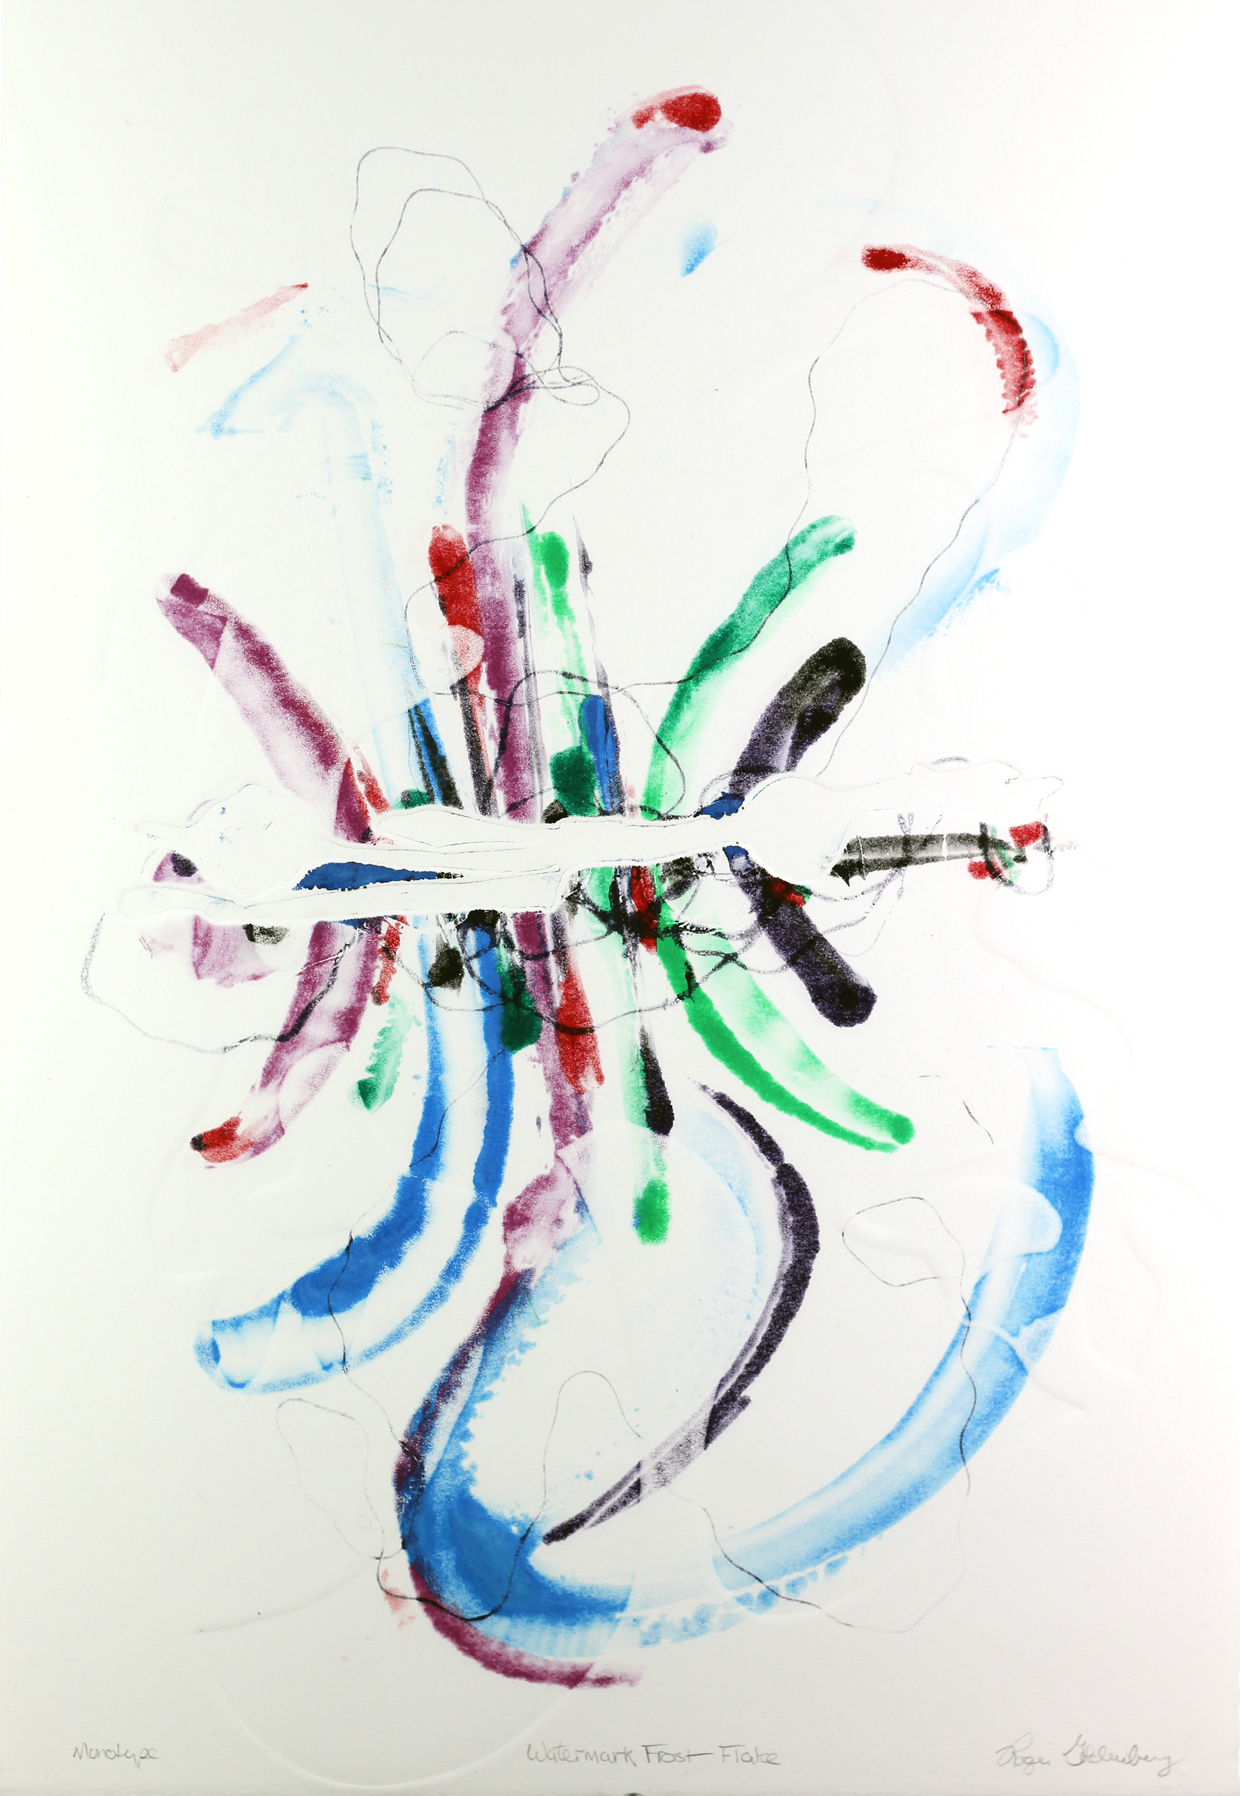 Roger Goldenberg's Visual Jazz Monotype Gallery D has prints pulled from shaped plates. Their style riffs on Goldenberg's shaped visual jazz paintings Watermark Frost Flake